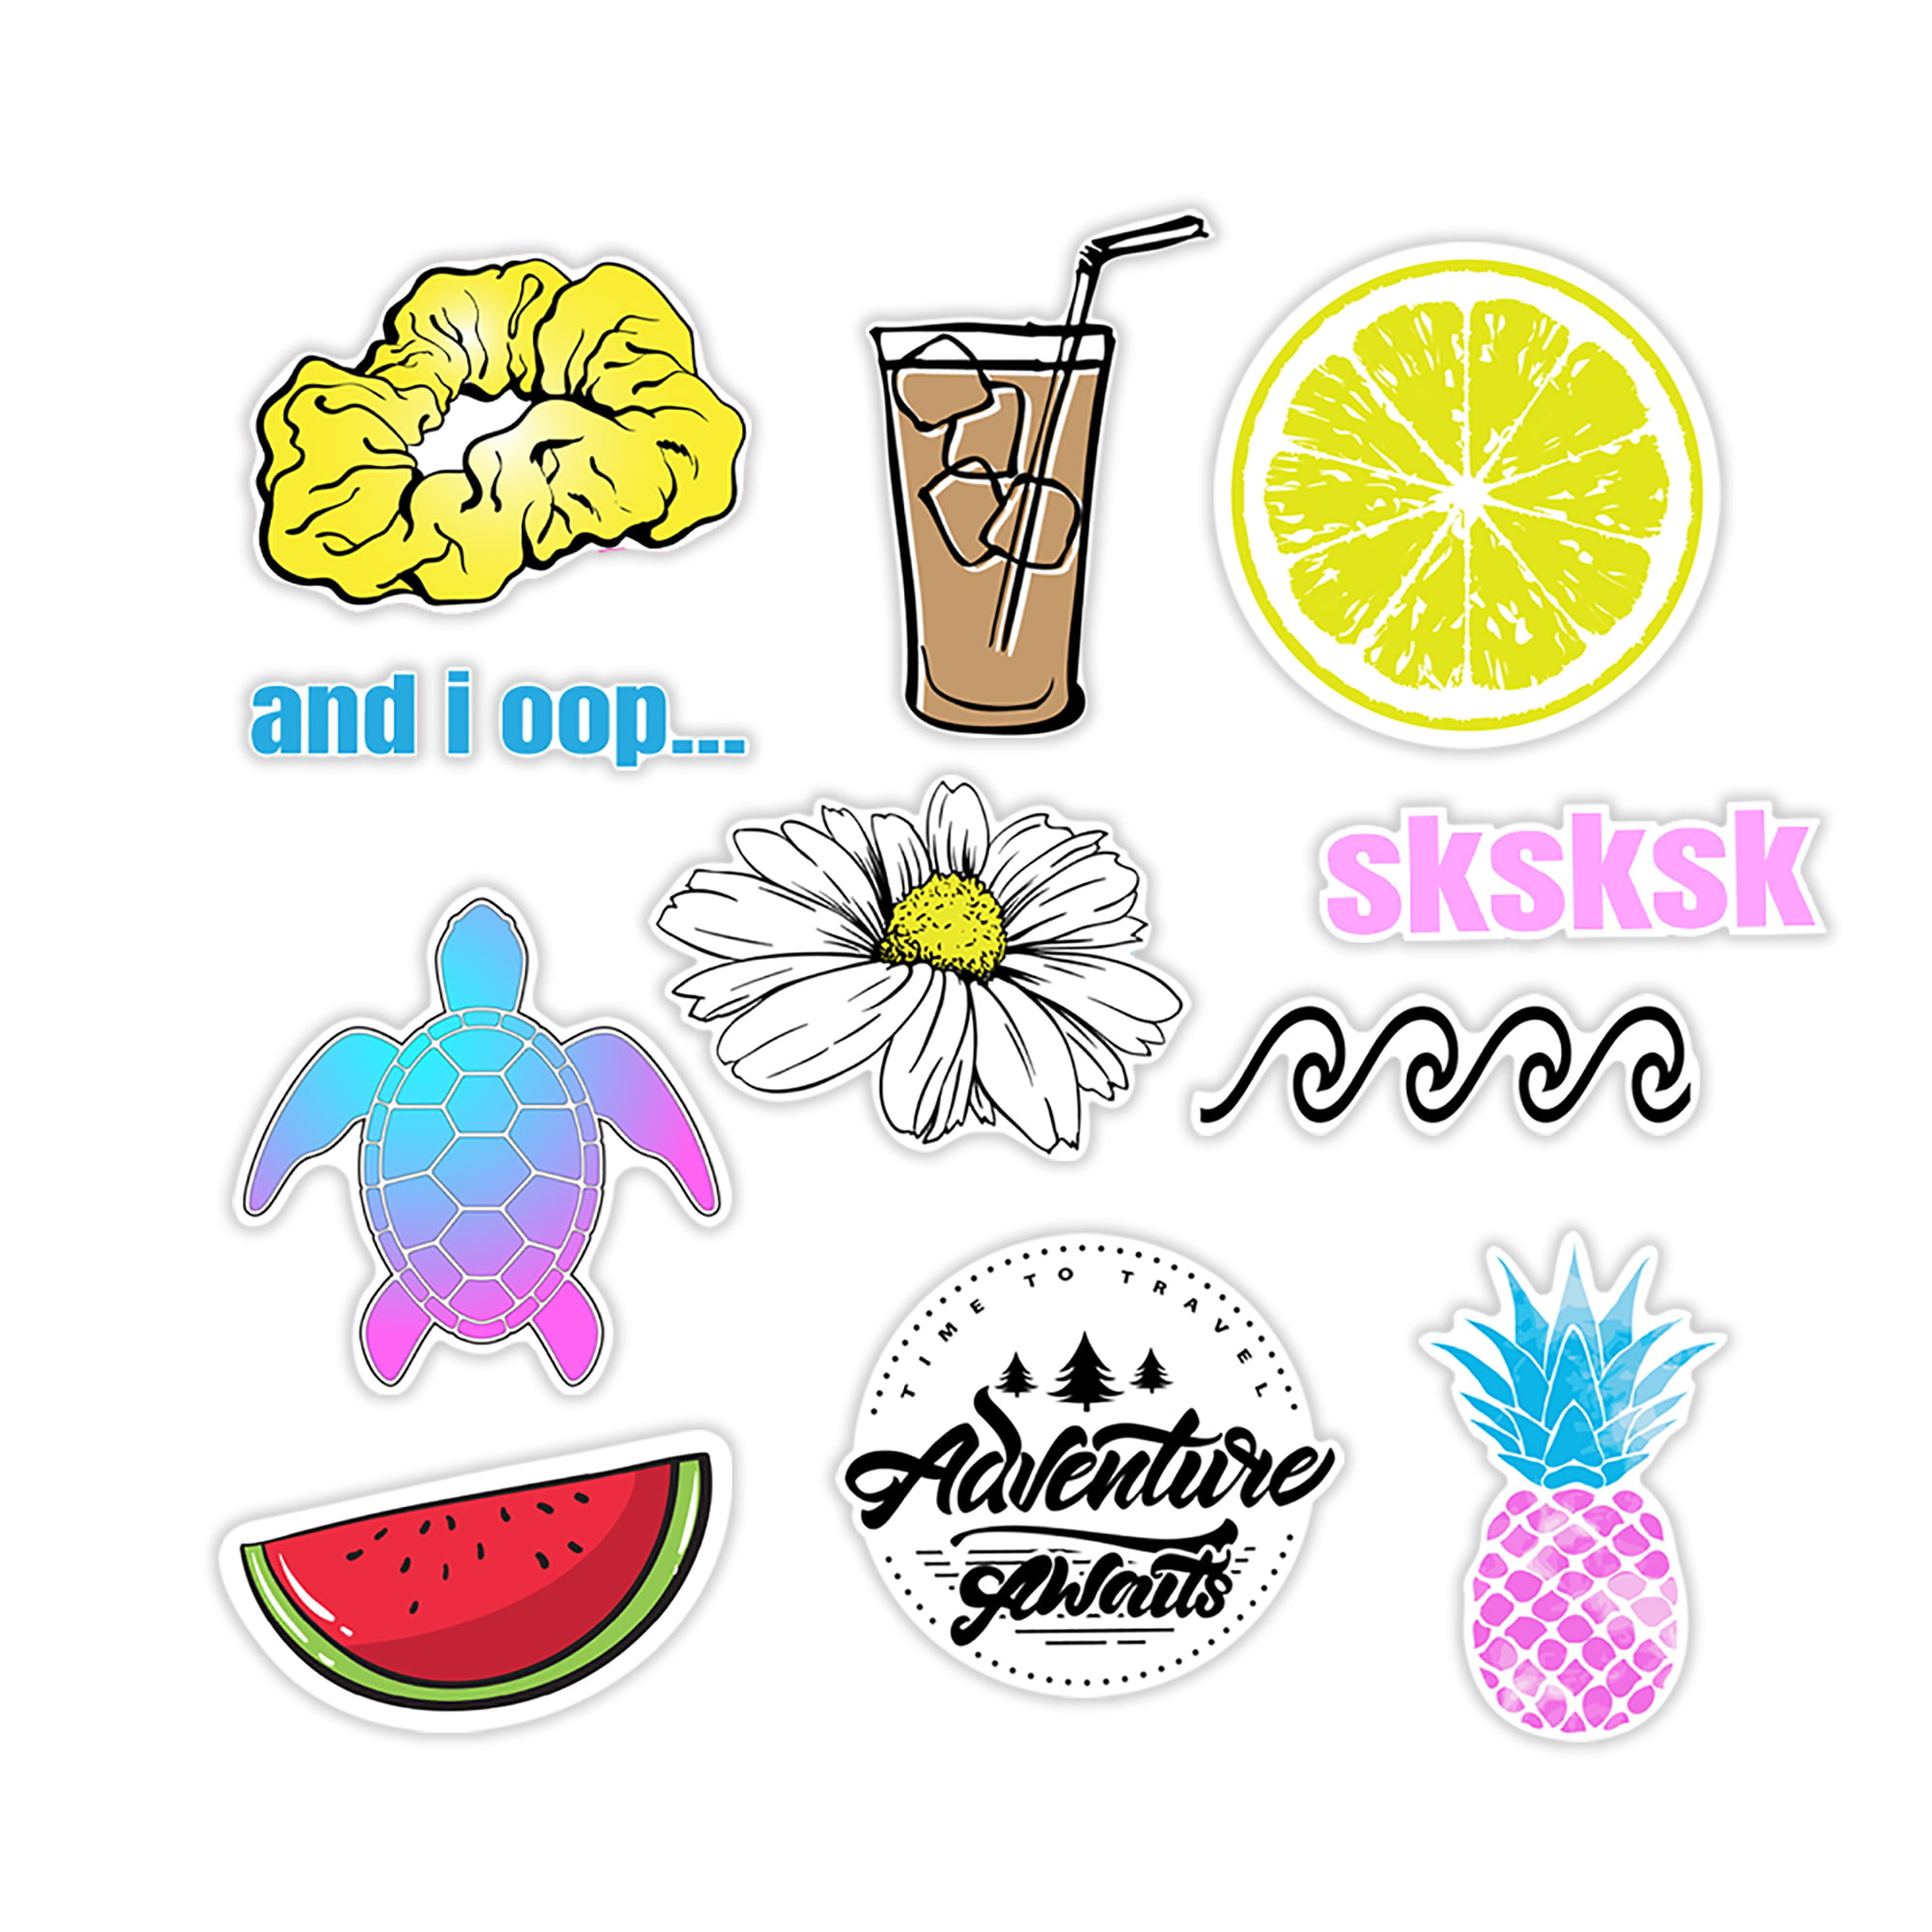 Skateboard Cars Bicycle Laptop Stickers Pack 50 PCS Summer Beach Style Cute Stickers Waterproof and Sun Protection for Laptop Luggage Water Bottle Macbook Cat